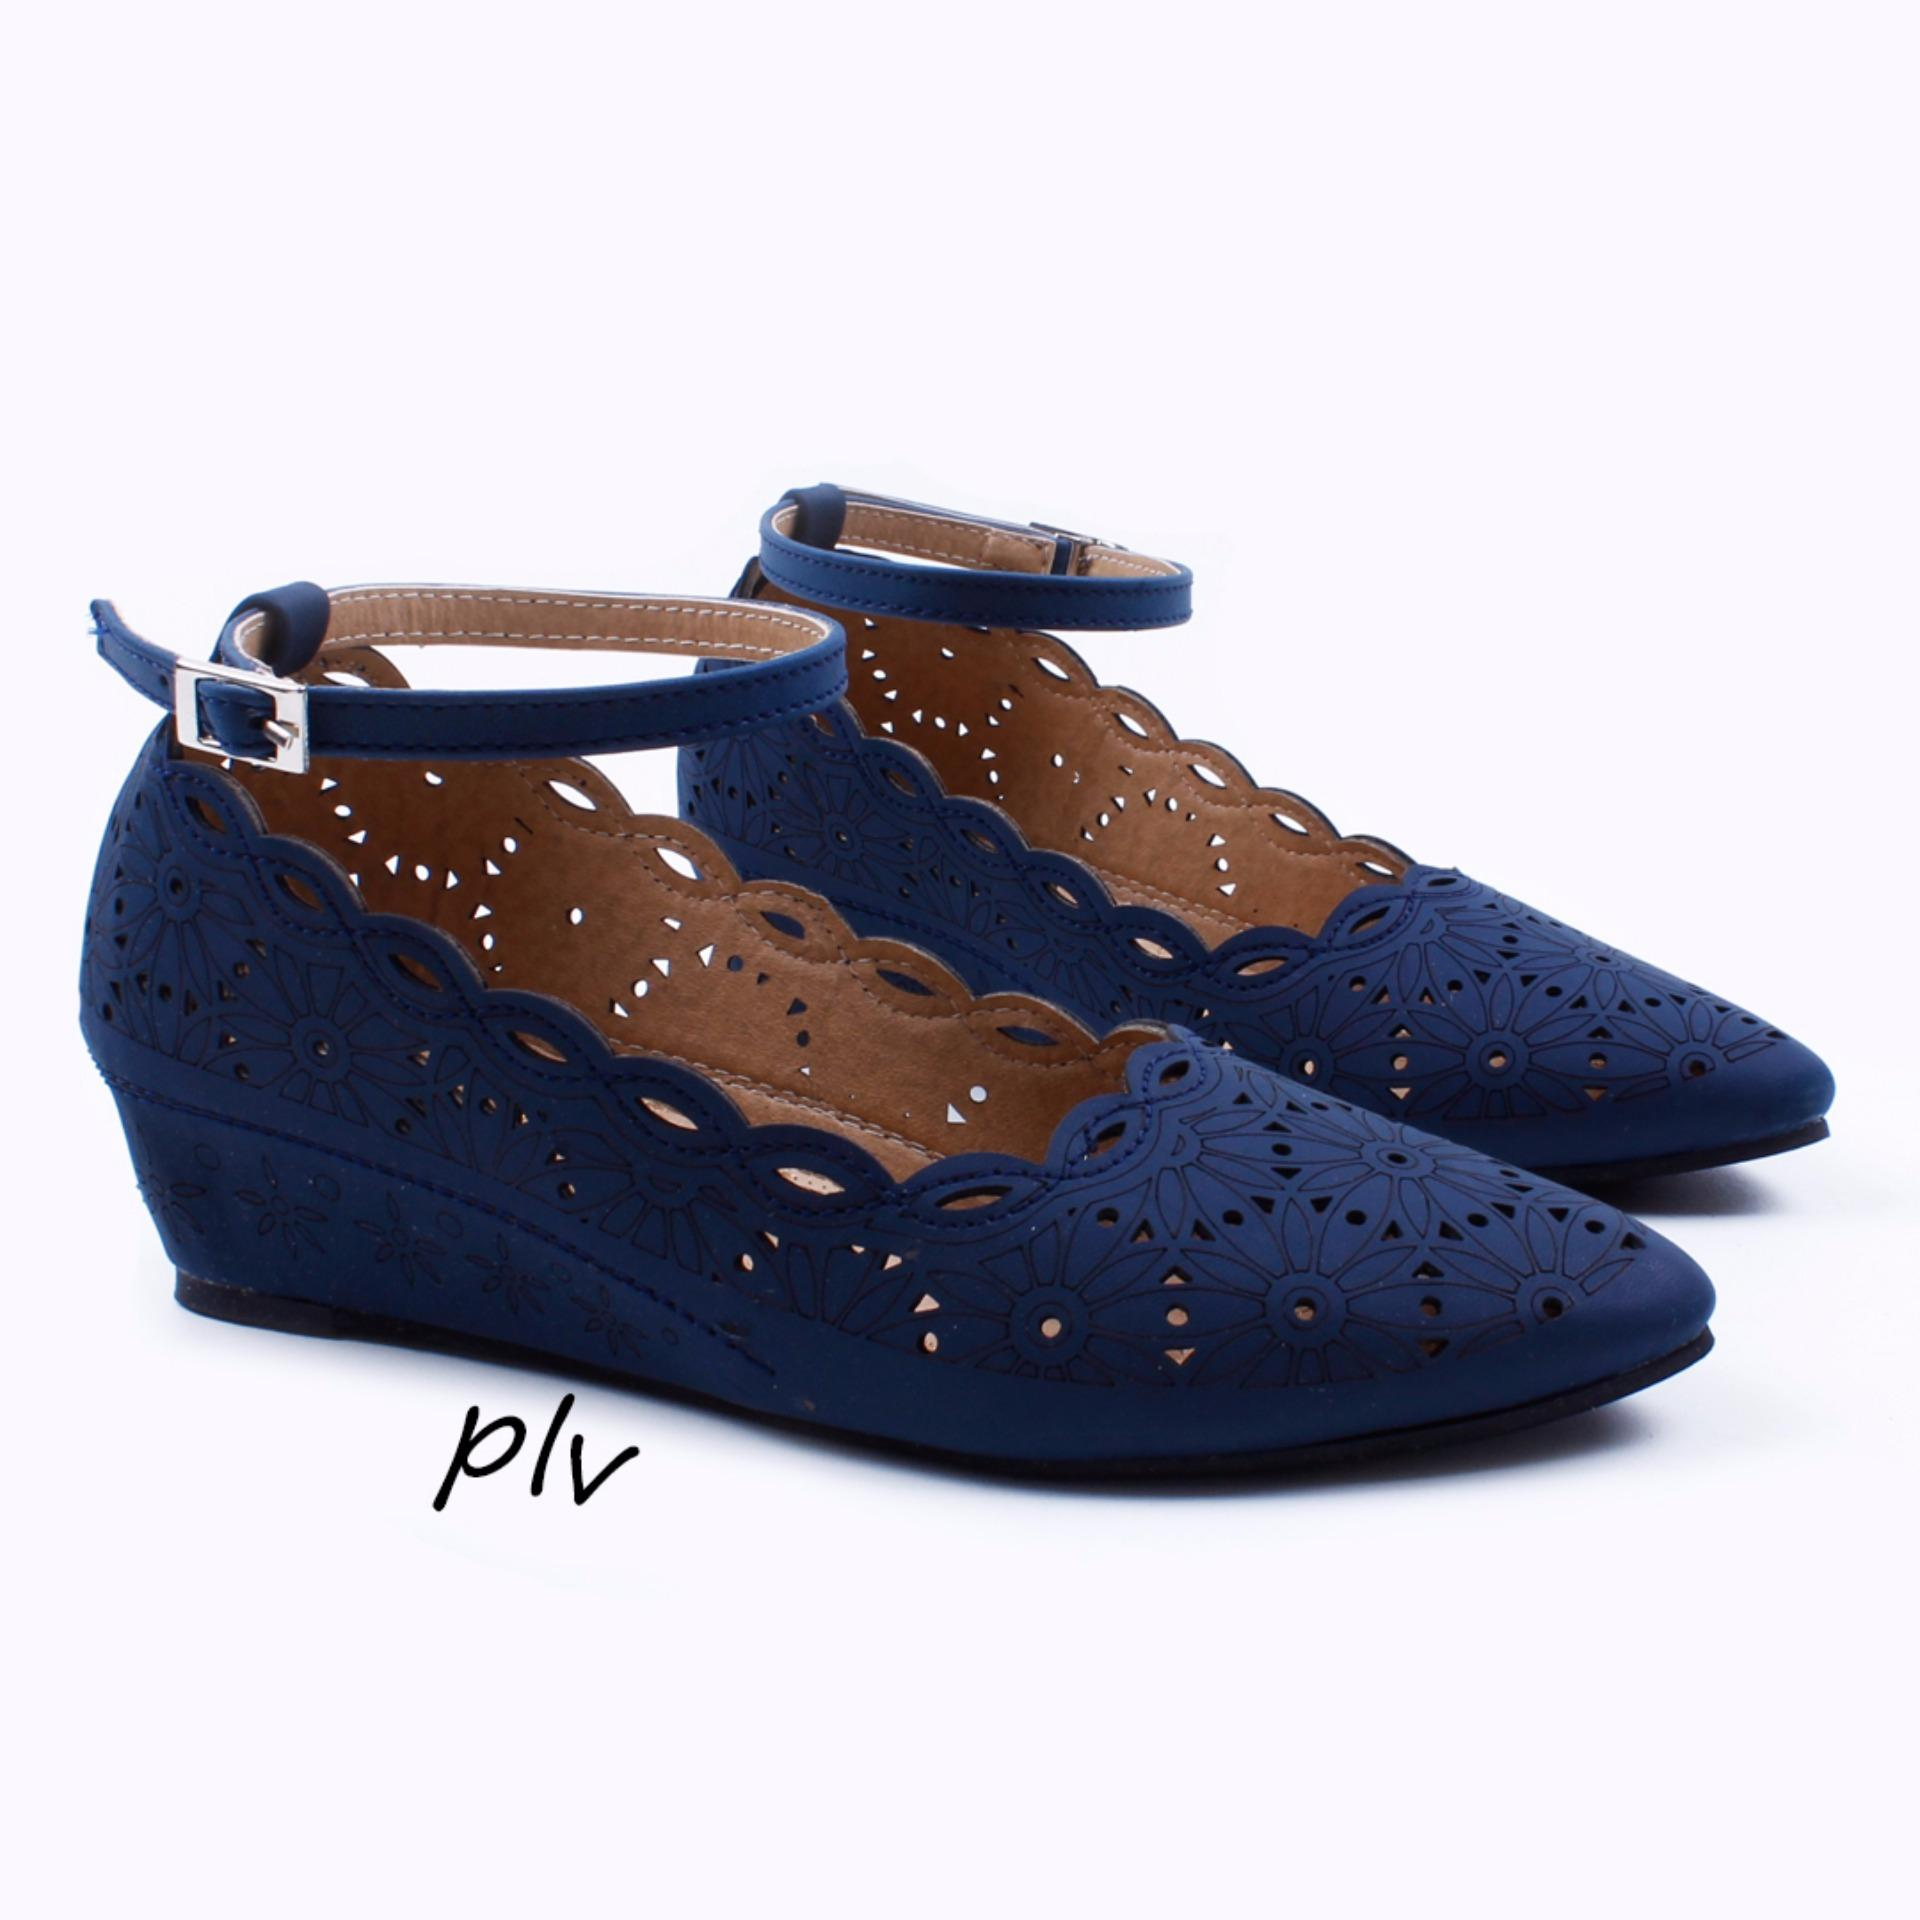 Ulasan Mengenai Pointed Toe Ankle Strap Hidden Heel Wedges Bs27 Navy